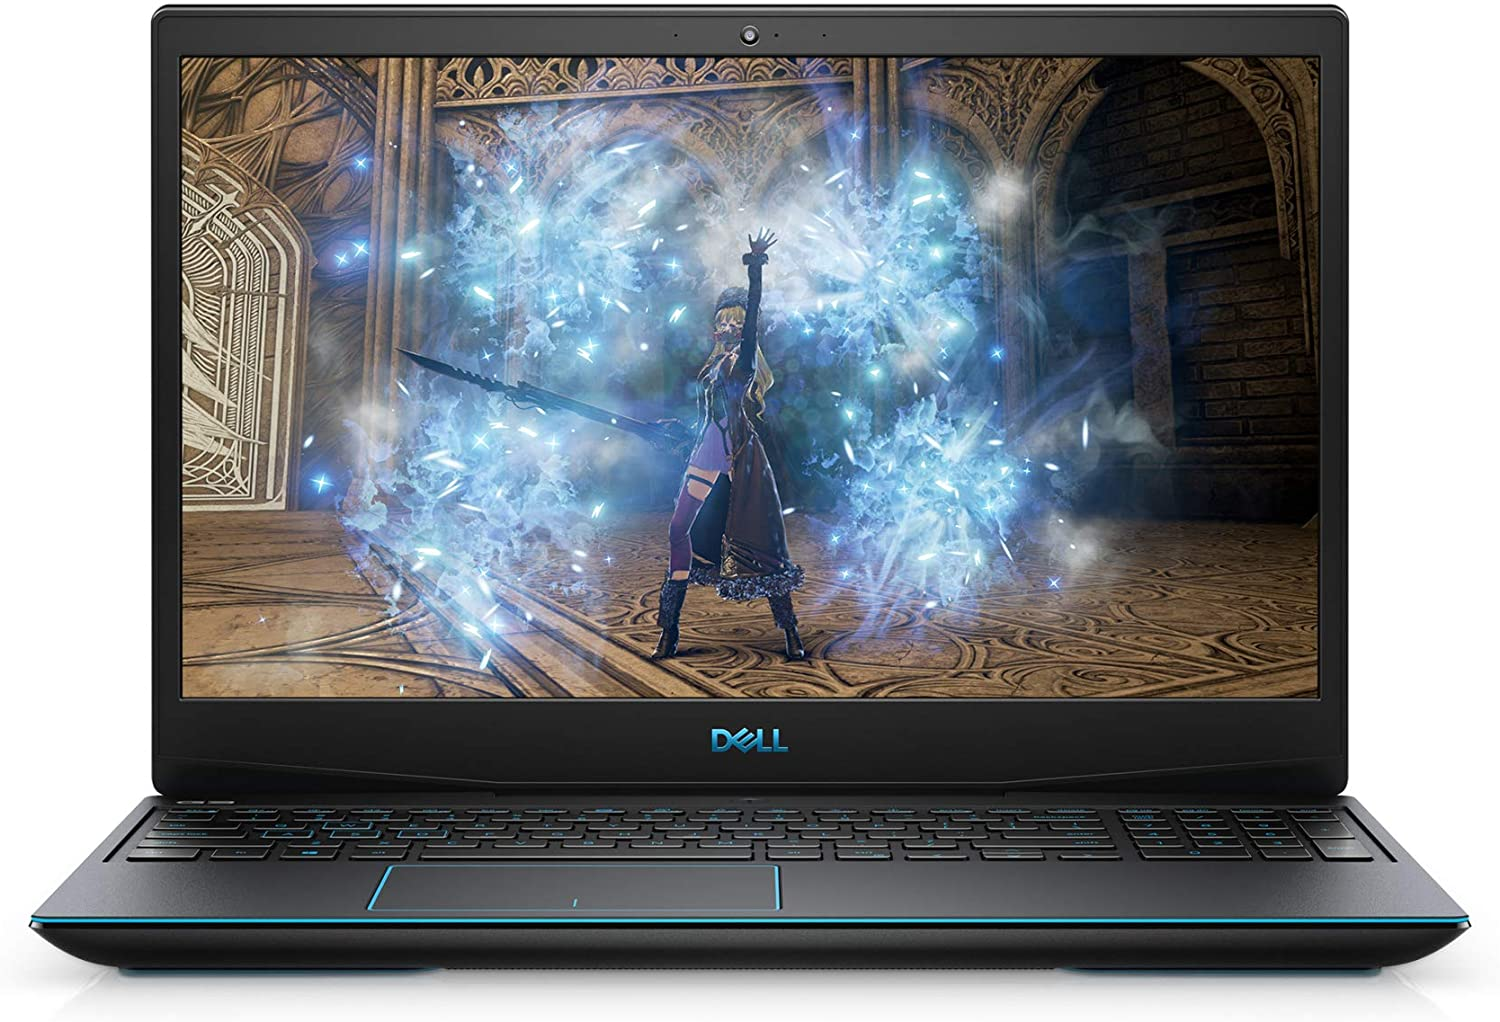 "2019 Dell G3 15.6"" FHD Gaming Laptop Computer, 9th Gen Intel Quad-Core i5-9300H up to 4.1GHz, 16GB DDR4 RAM, 512GB PCIE SSD + 1TB HDD, GeForce GTX 1660 Ti 6GB, 802.11ac WiFi, USB 3.0, HDMI, Windows 10"